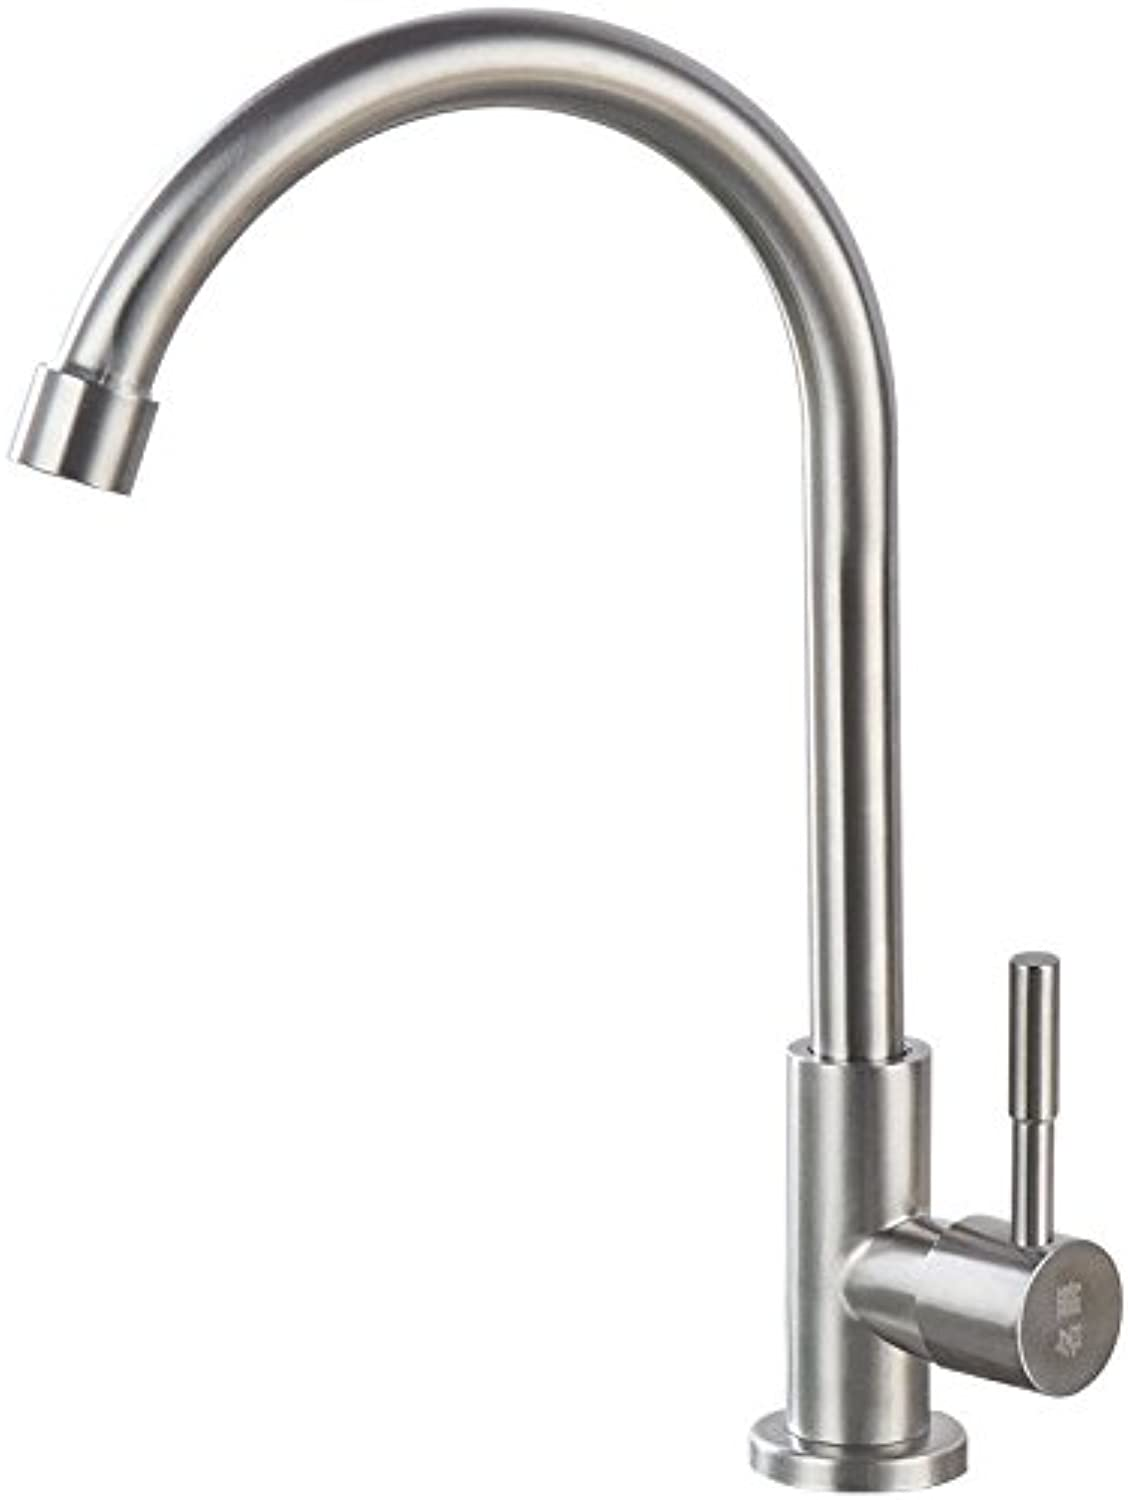 AQMMi Basin Sink Mixer Tap for Lavatory 304 Stainless Steel Single Cold Bathroom Vanity Sink Faucet